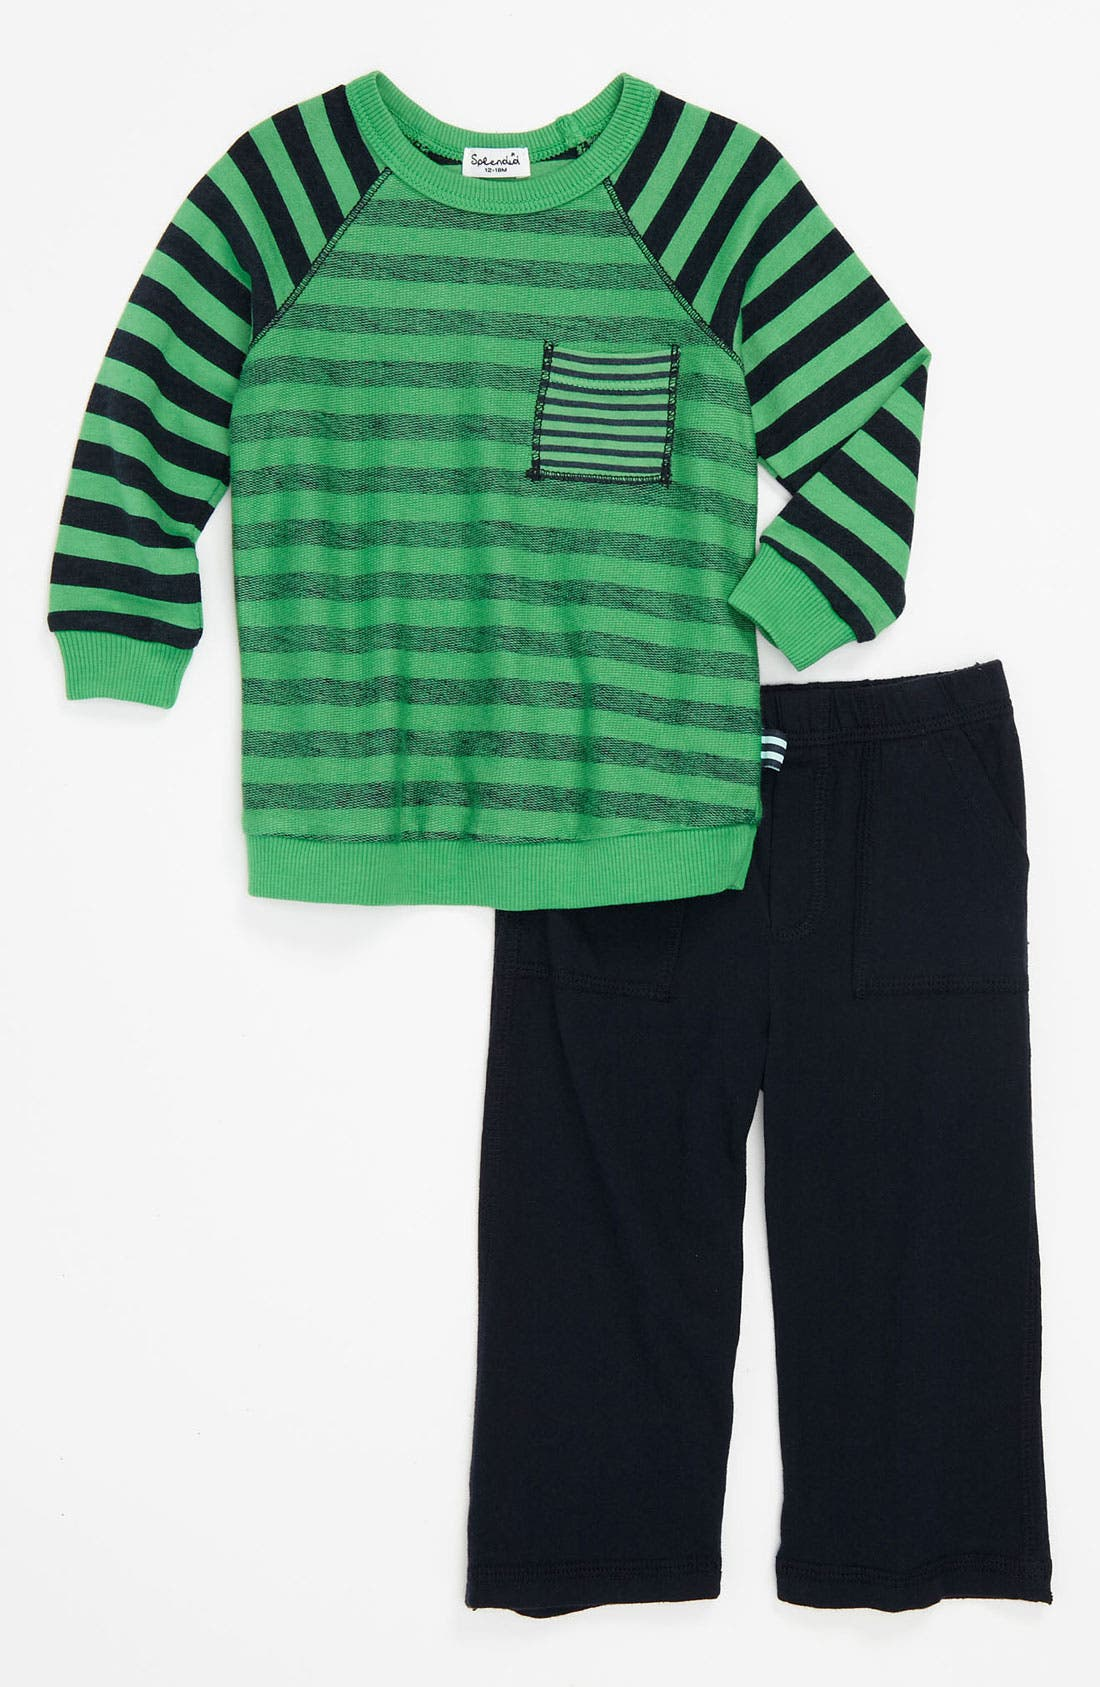 Main Image - Splendid Stripe Top & Knit Pants (Infant)